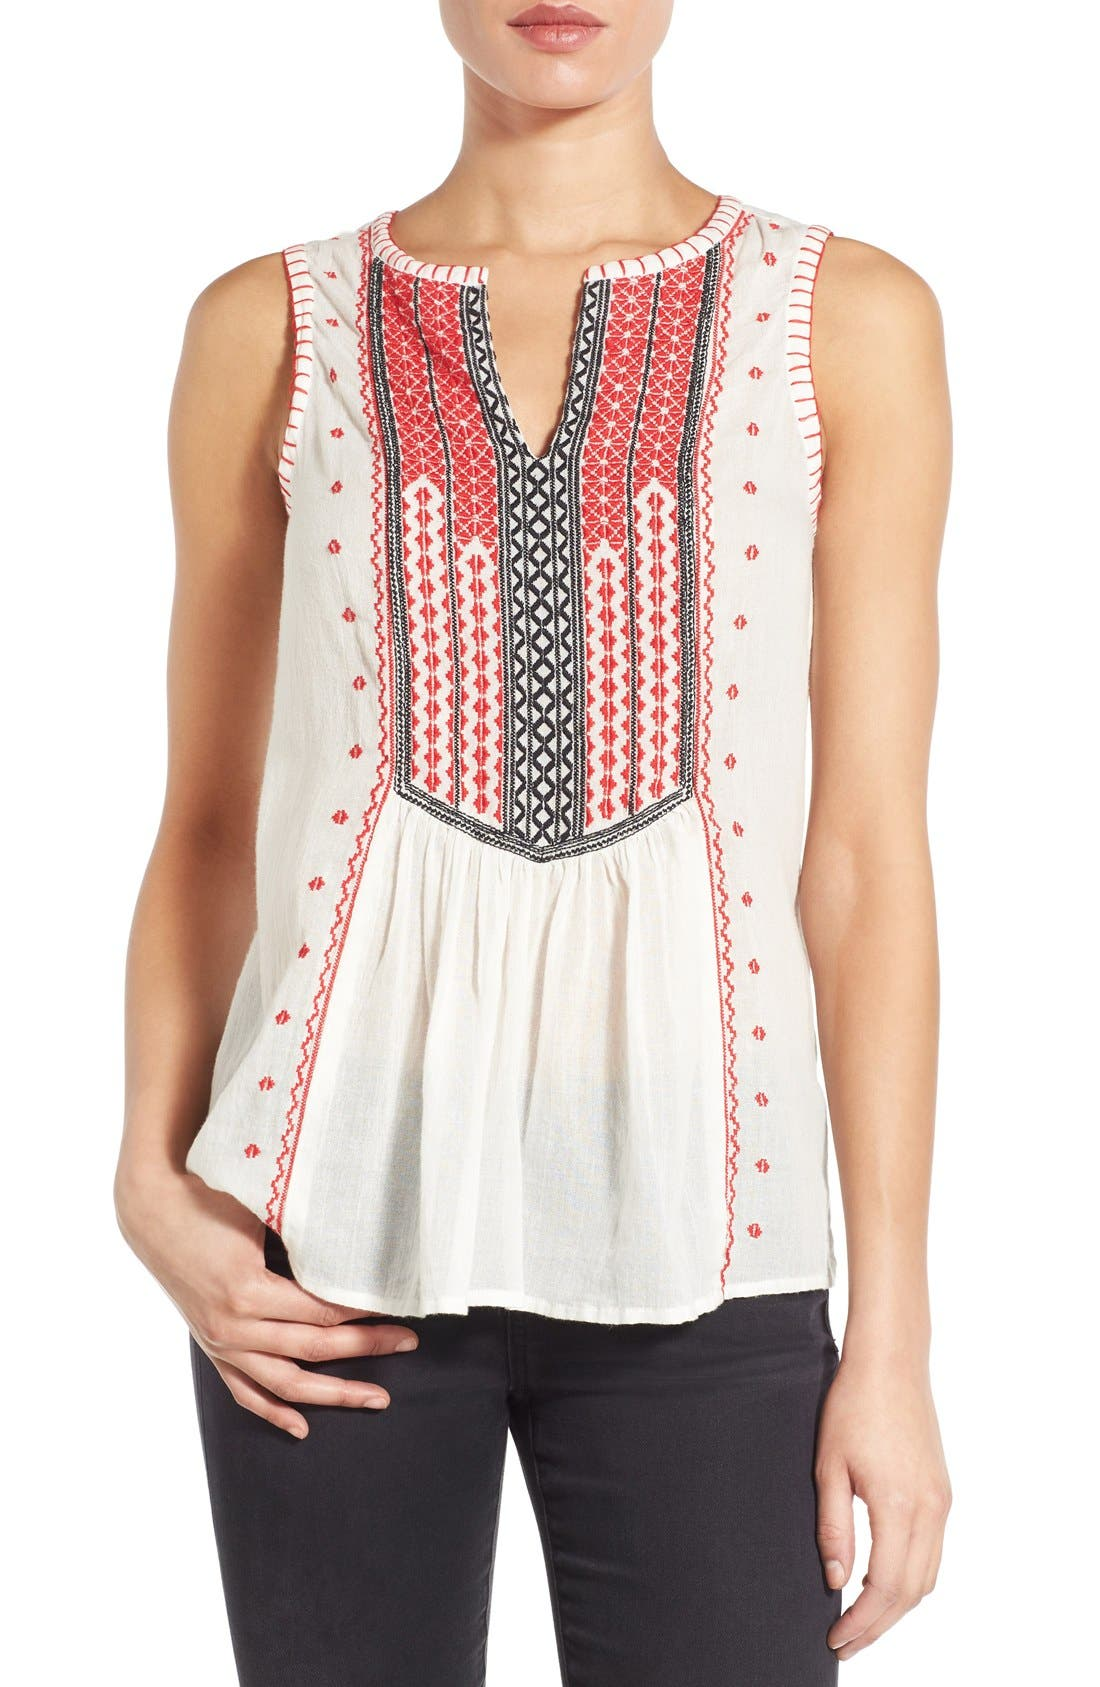 Alternate Image 1 Selected - Lucky Brand Embroidered Bib Cotton Tank